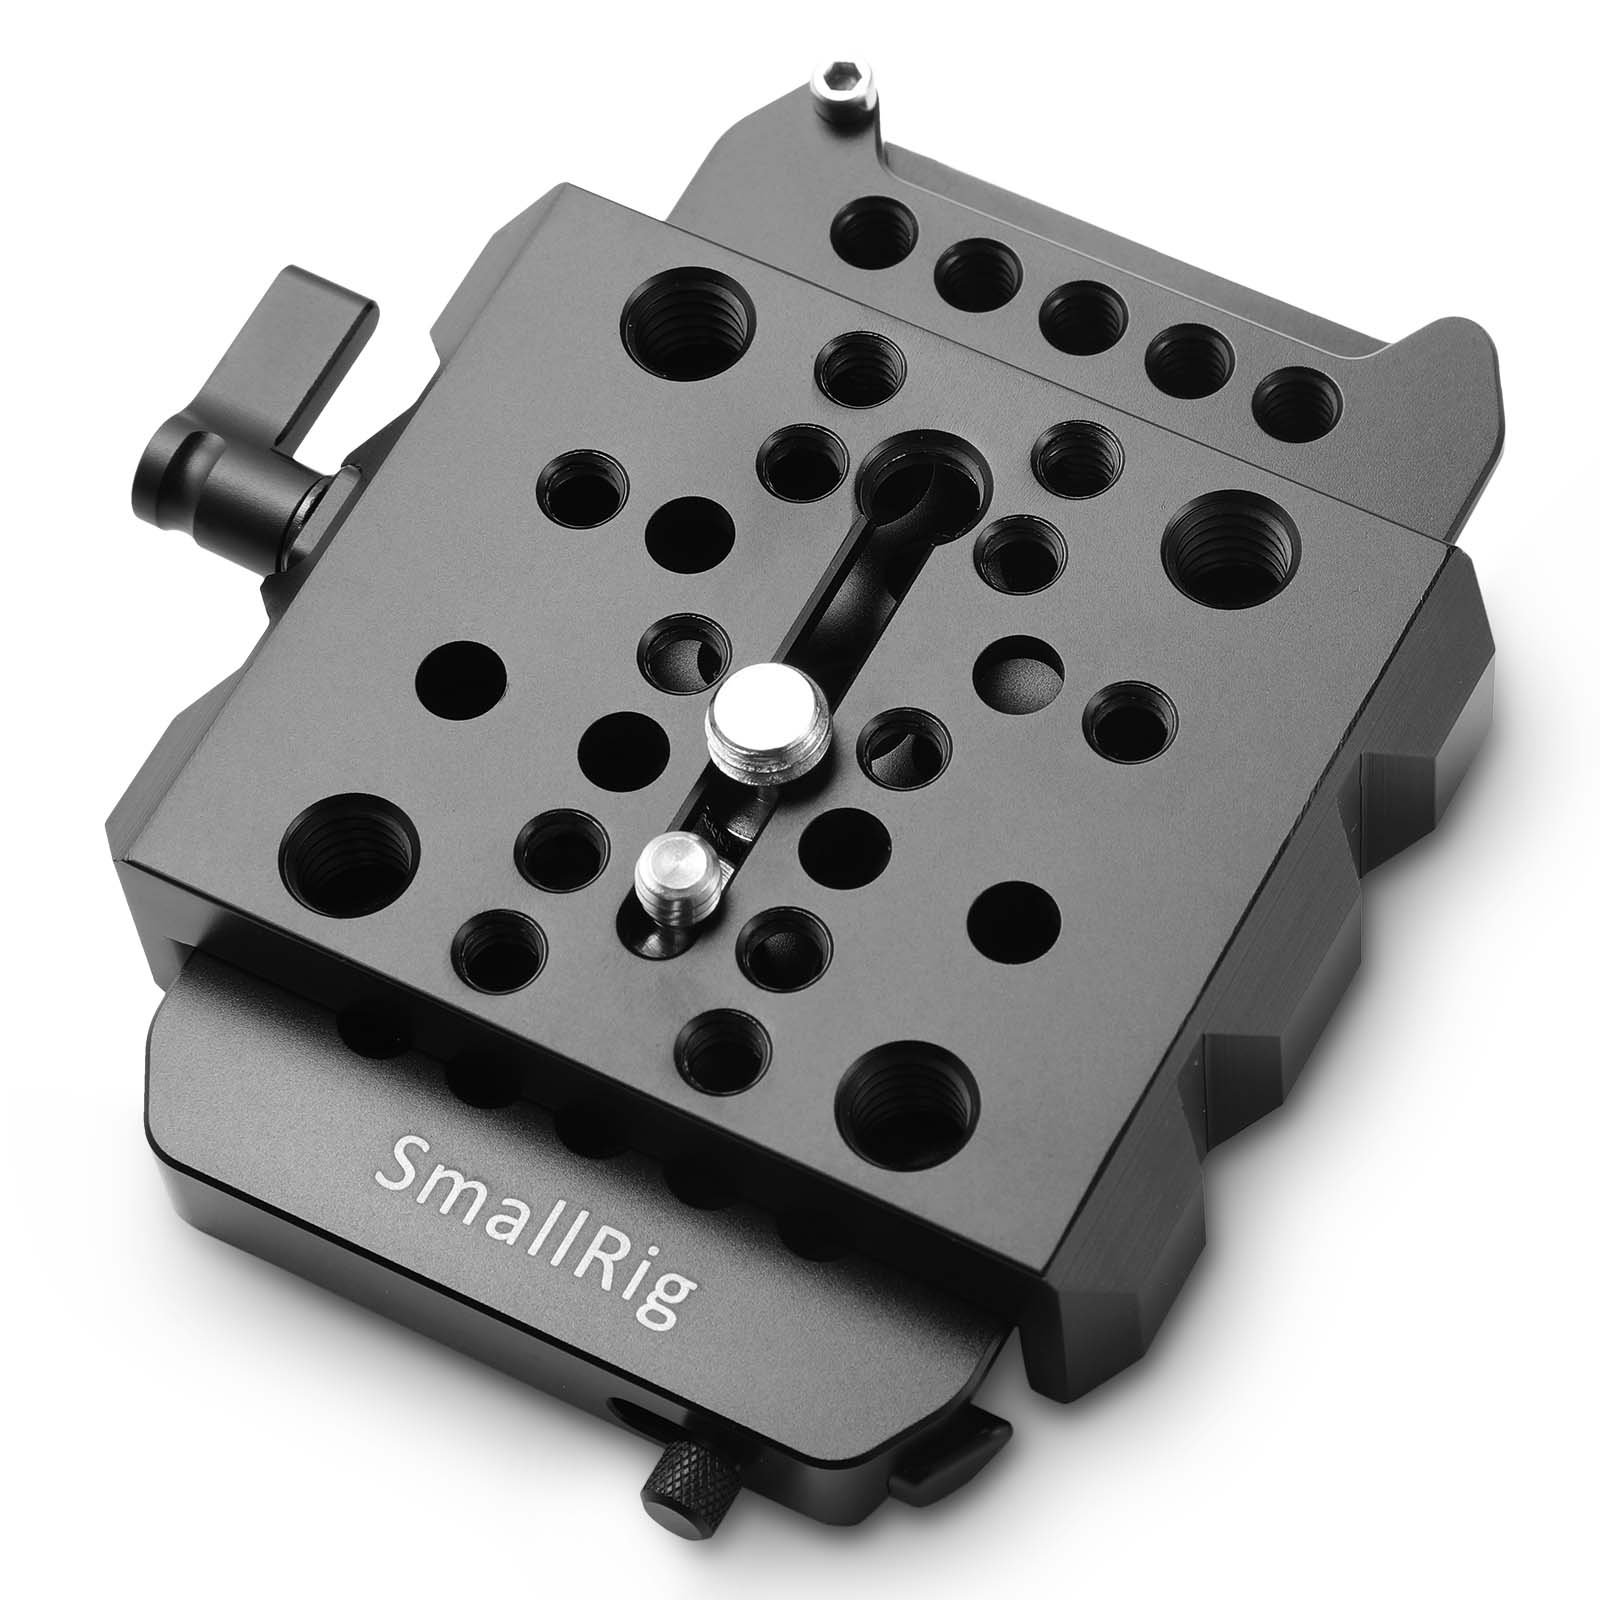 SMALLRIG Quick Release Plate Set, Dovetail Kit for ARRI Standard Plate and Clamp - 1723 by SmallRig